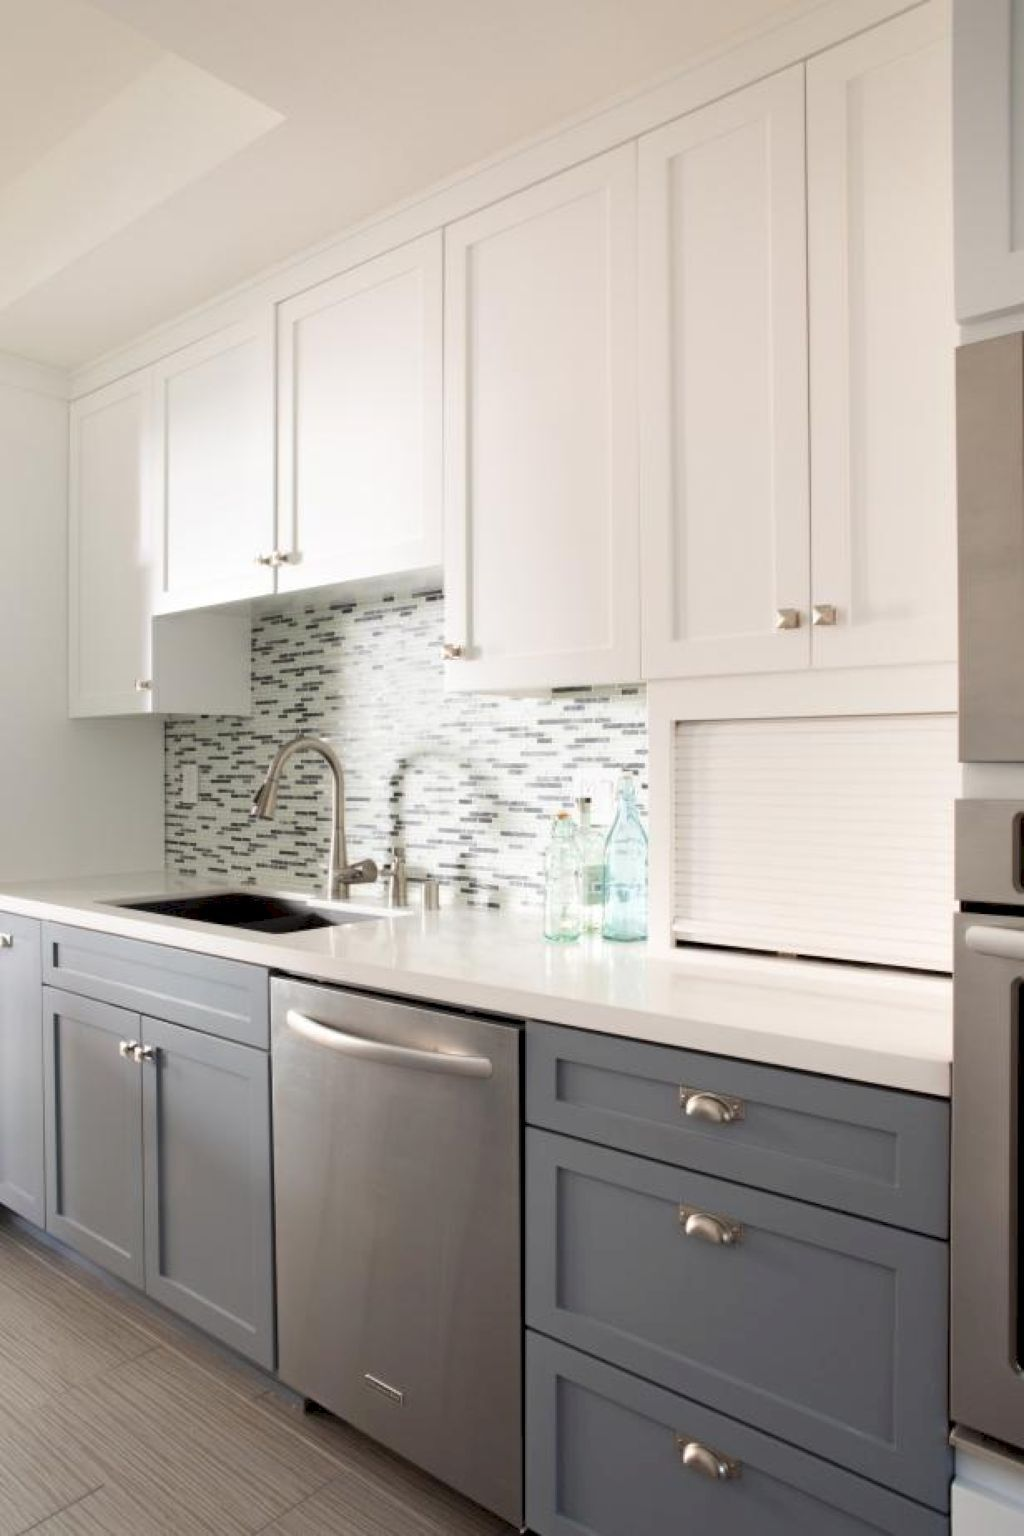 Adorable 85 Modern Kitchen Cabinetry Decor Ideas